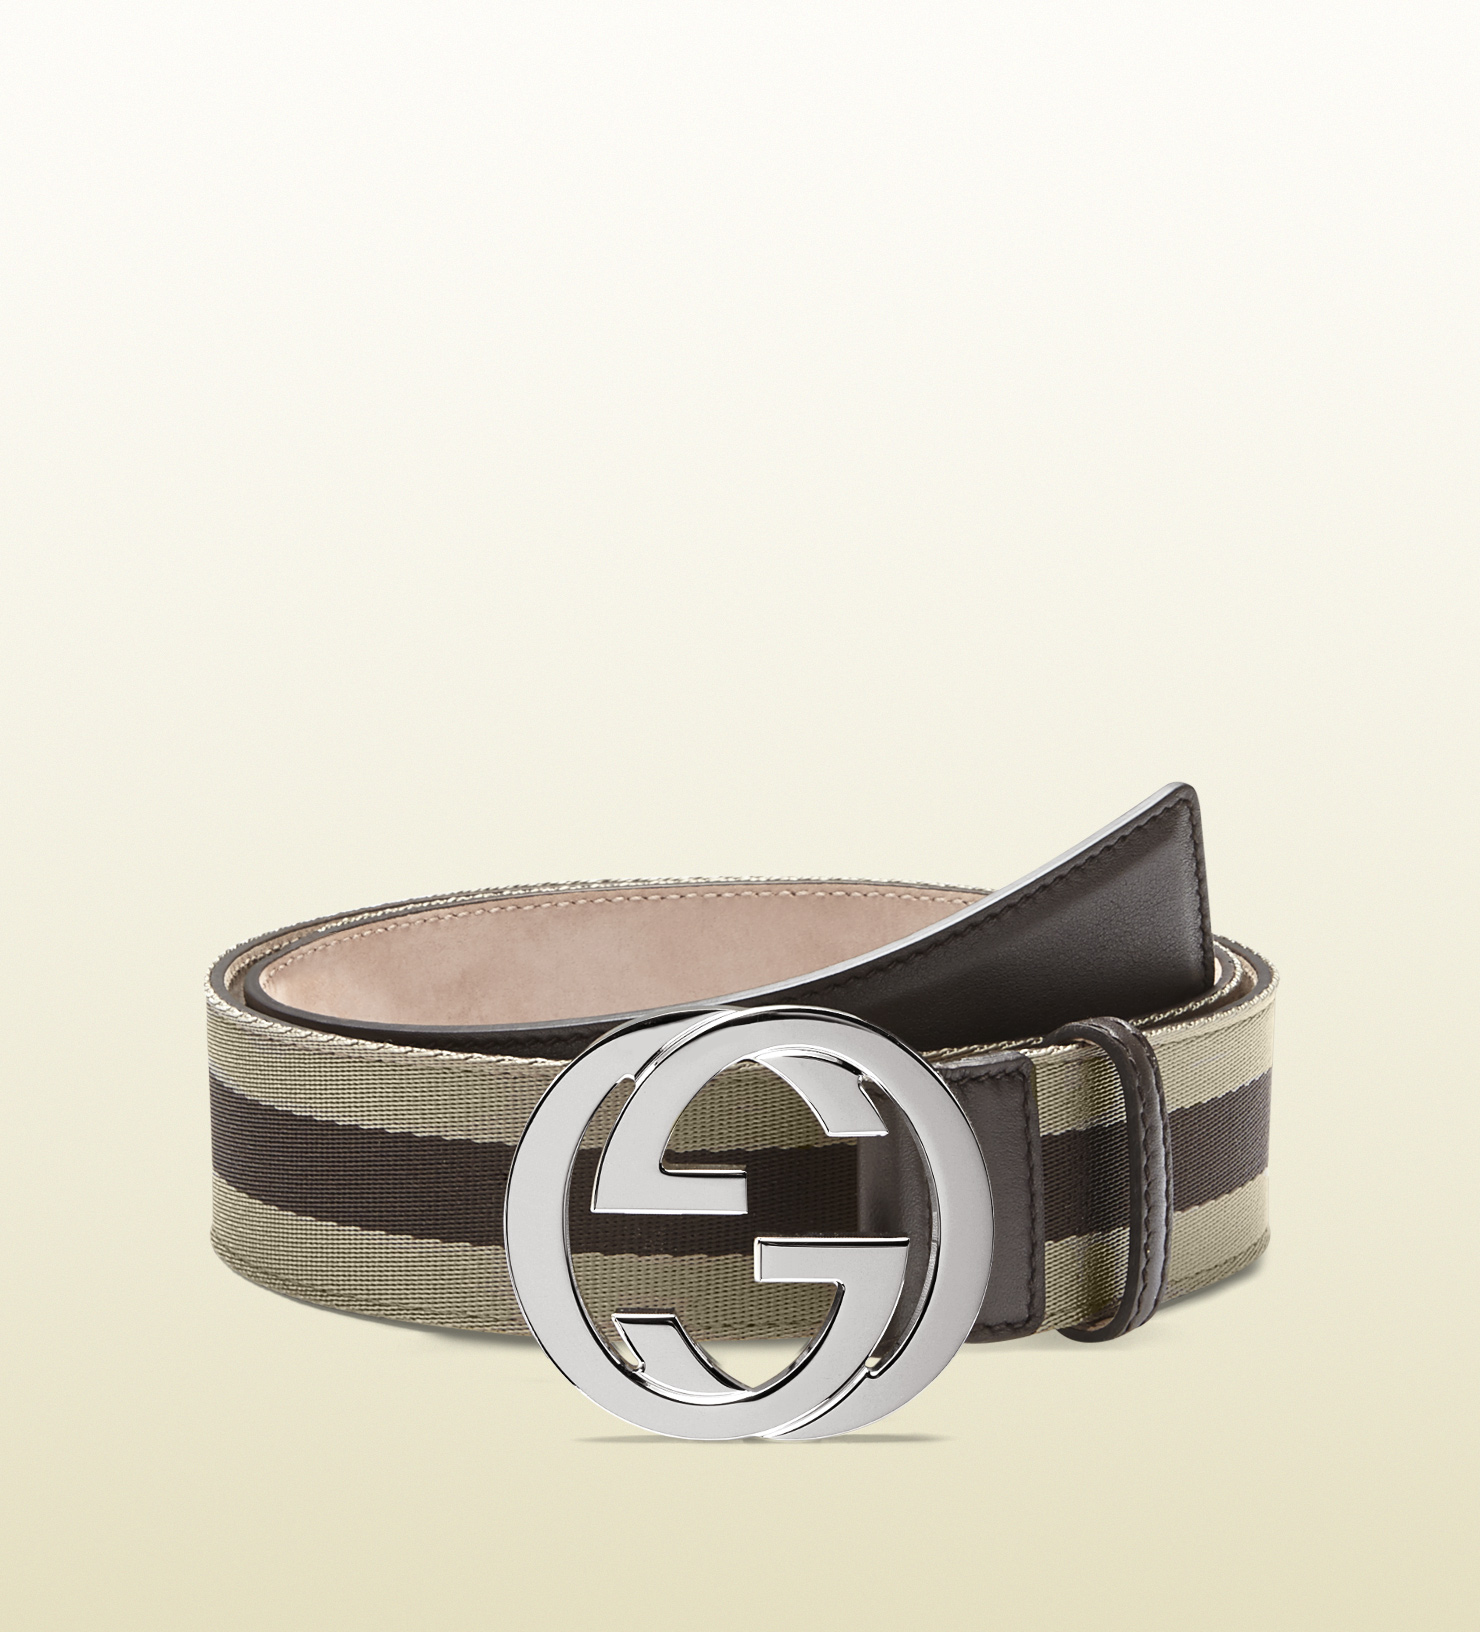 13543721e14 Gucci Nylon Web Belt with Interlocking G Buckle in Natural for Men ...